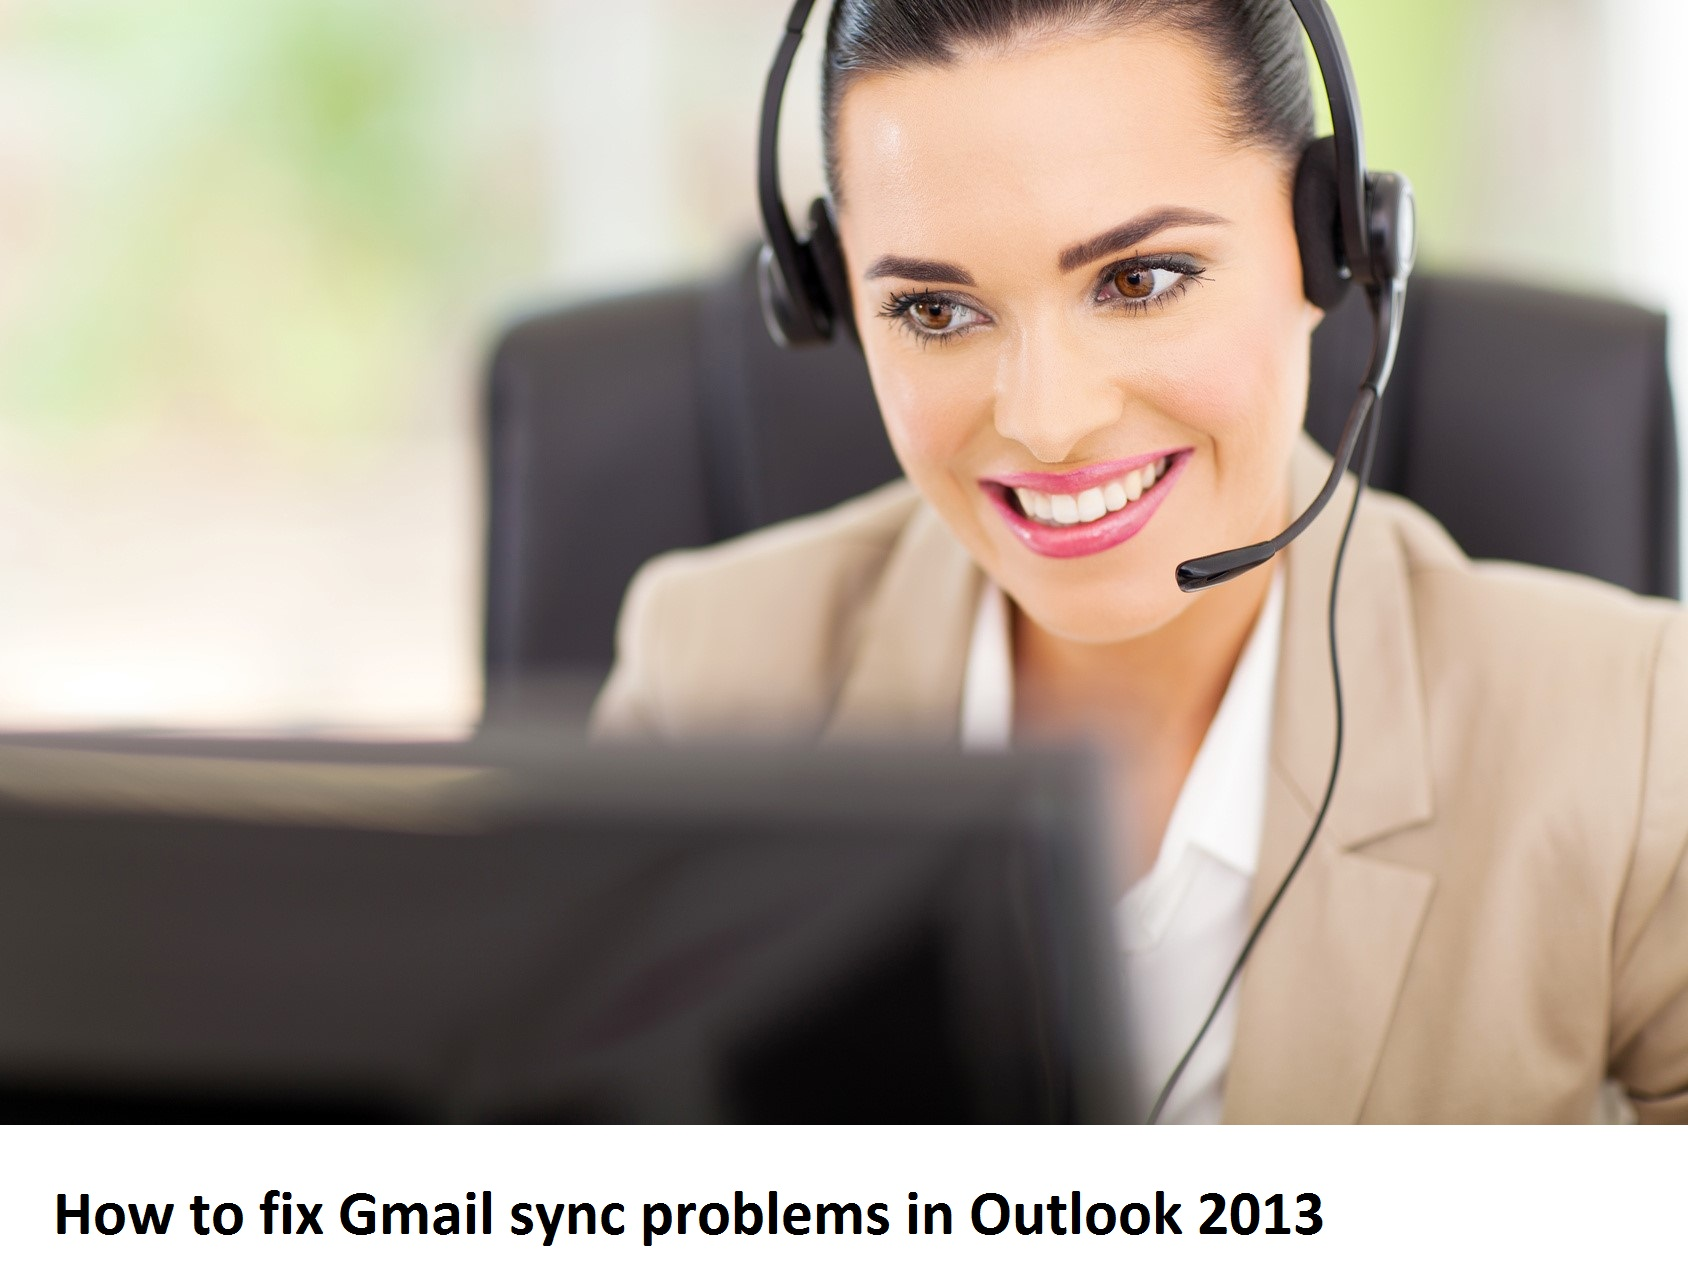 How to fix Gmail sync problems in Outlook 2013